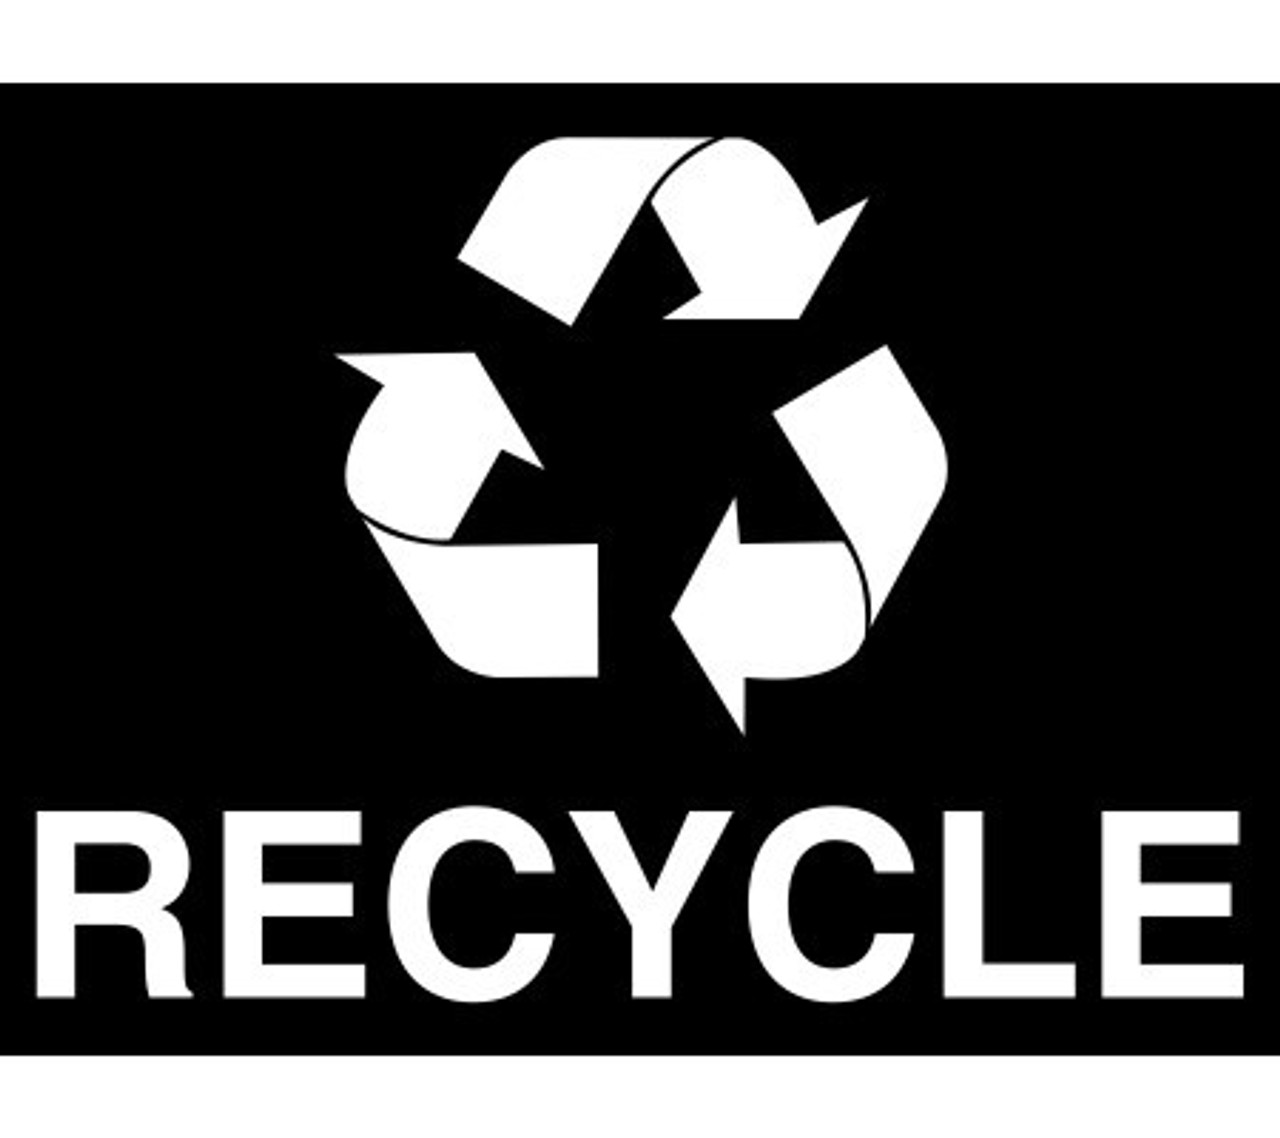 Optional White Recycle Decal